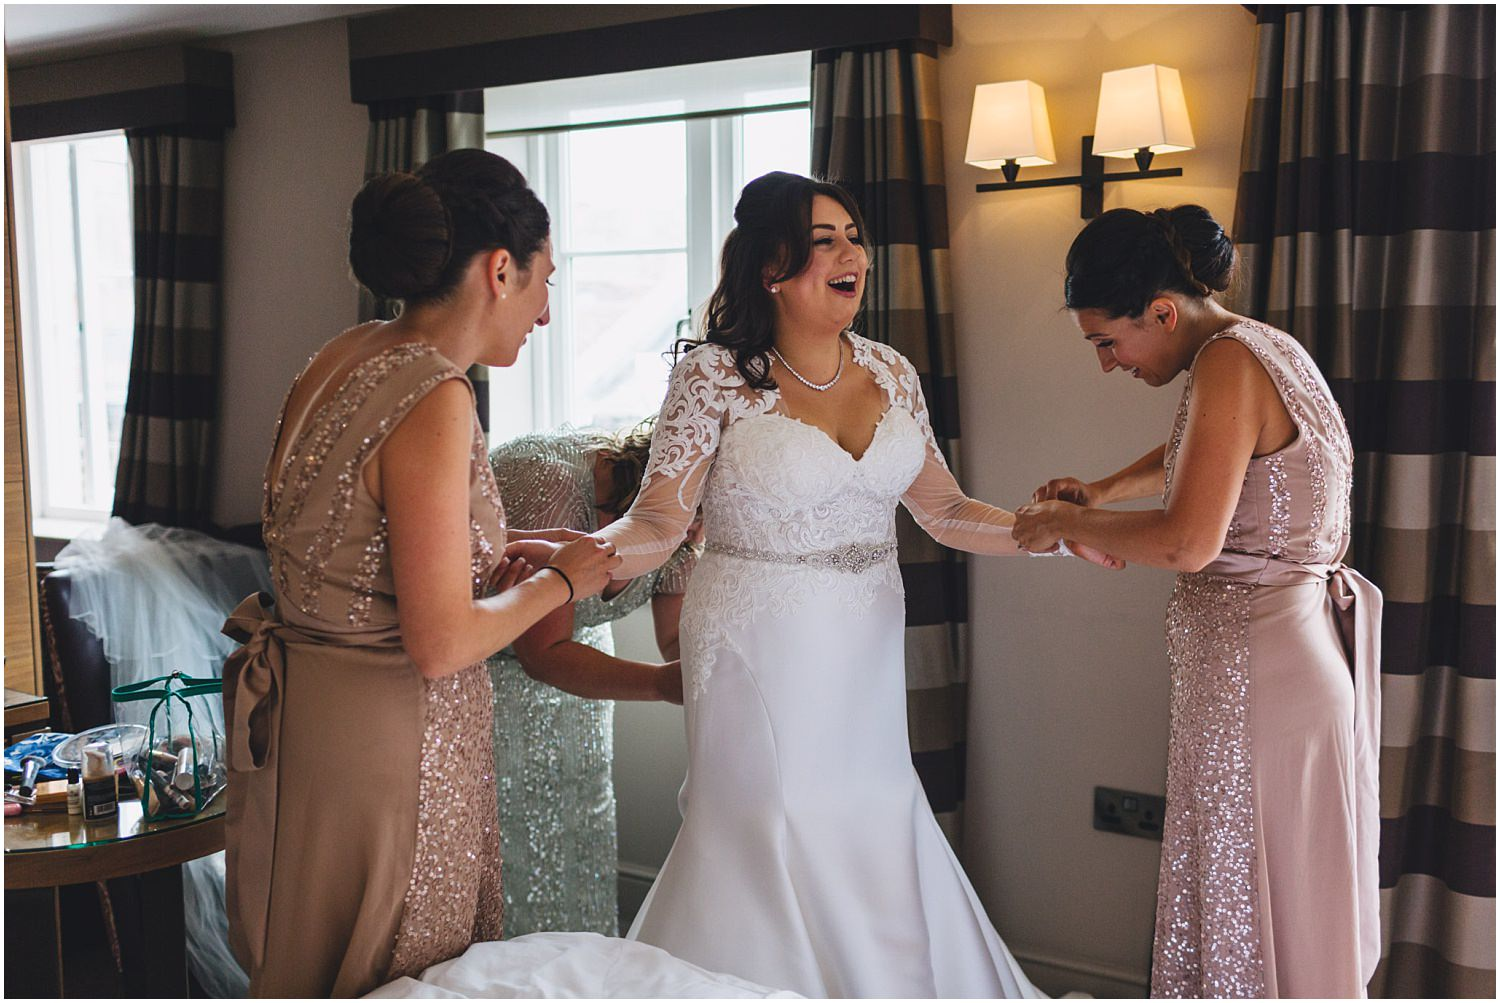 Windsor wedding. Bride putting on her dress at the MacDonald Windsor hotel